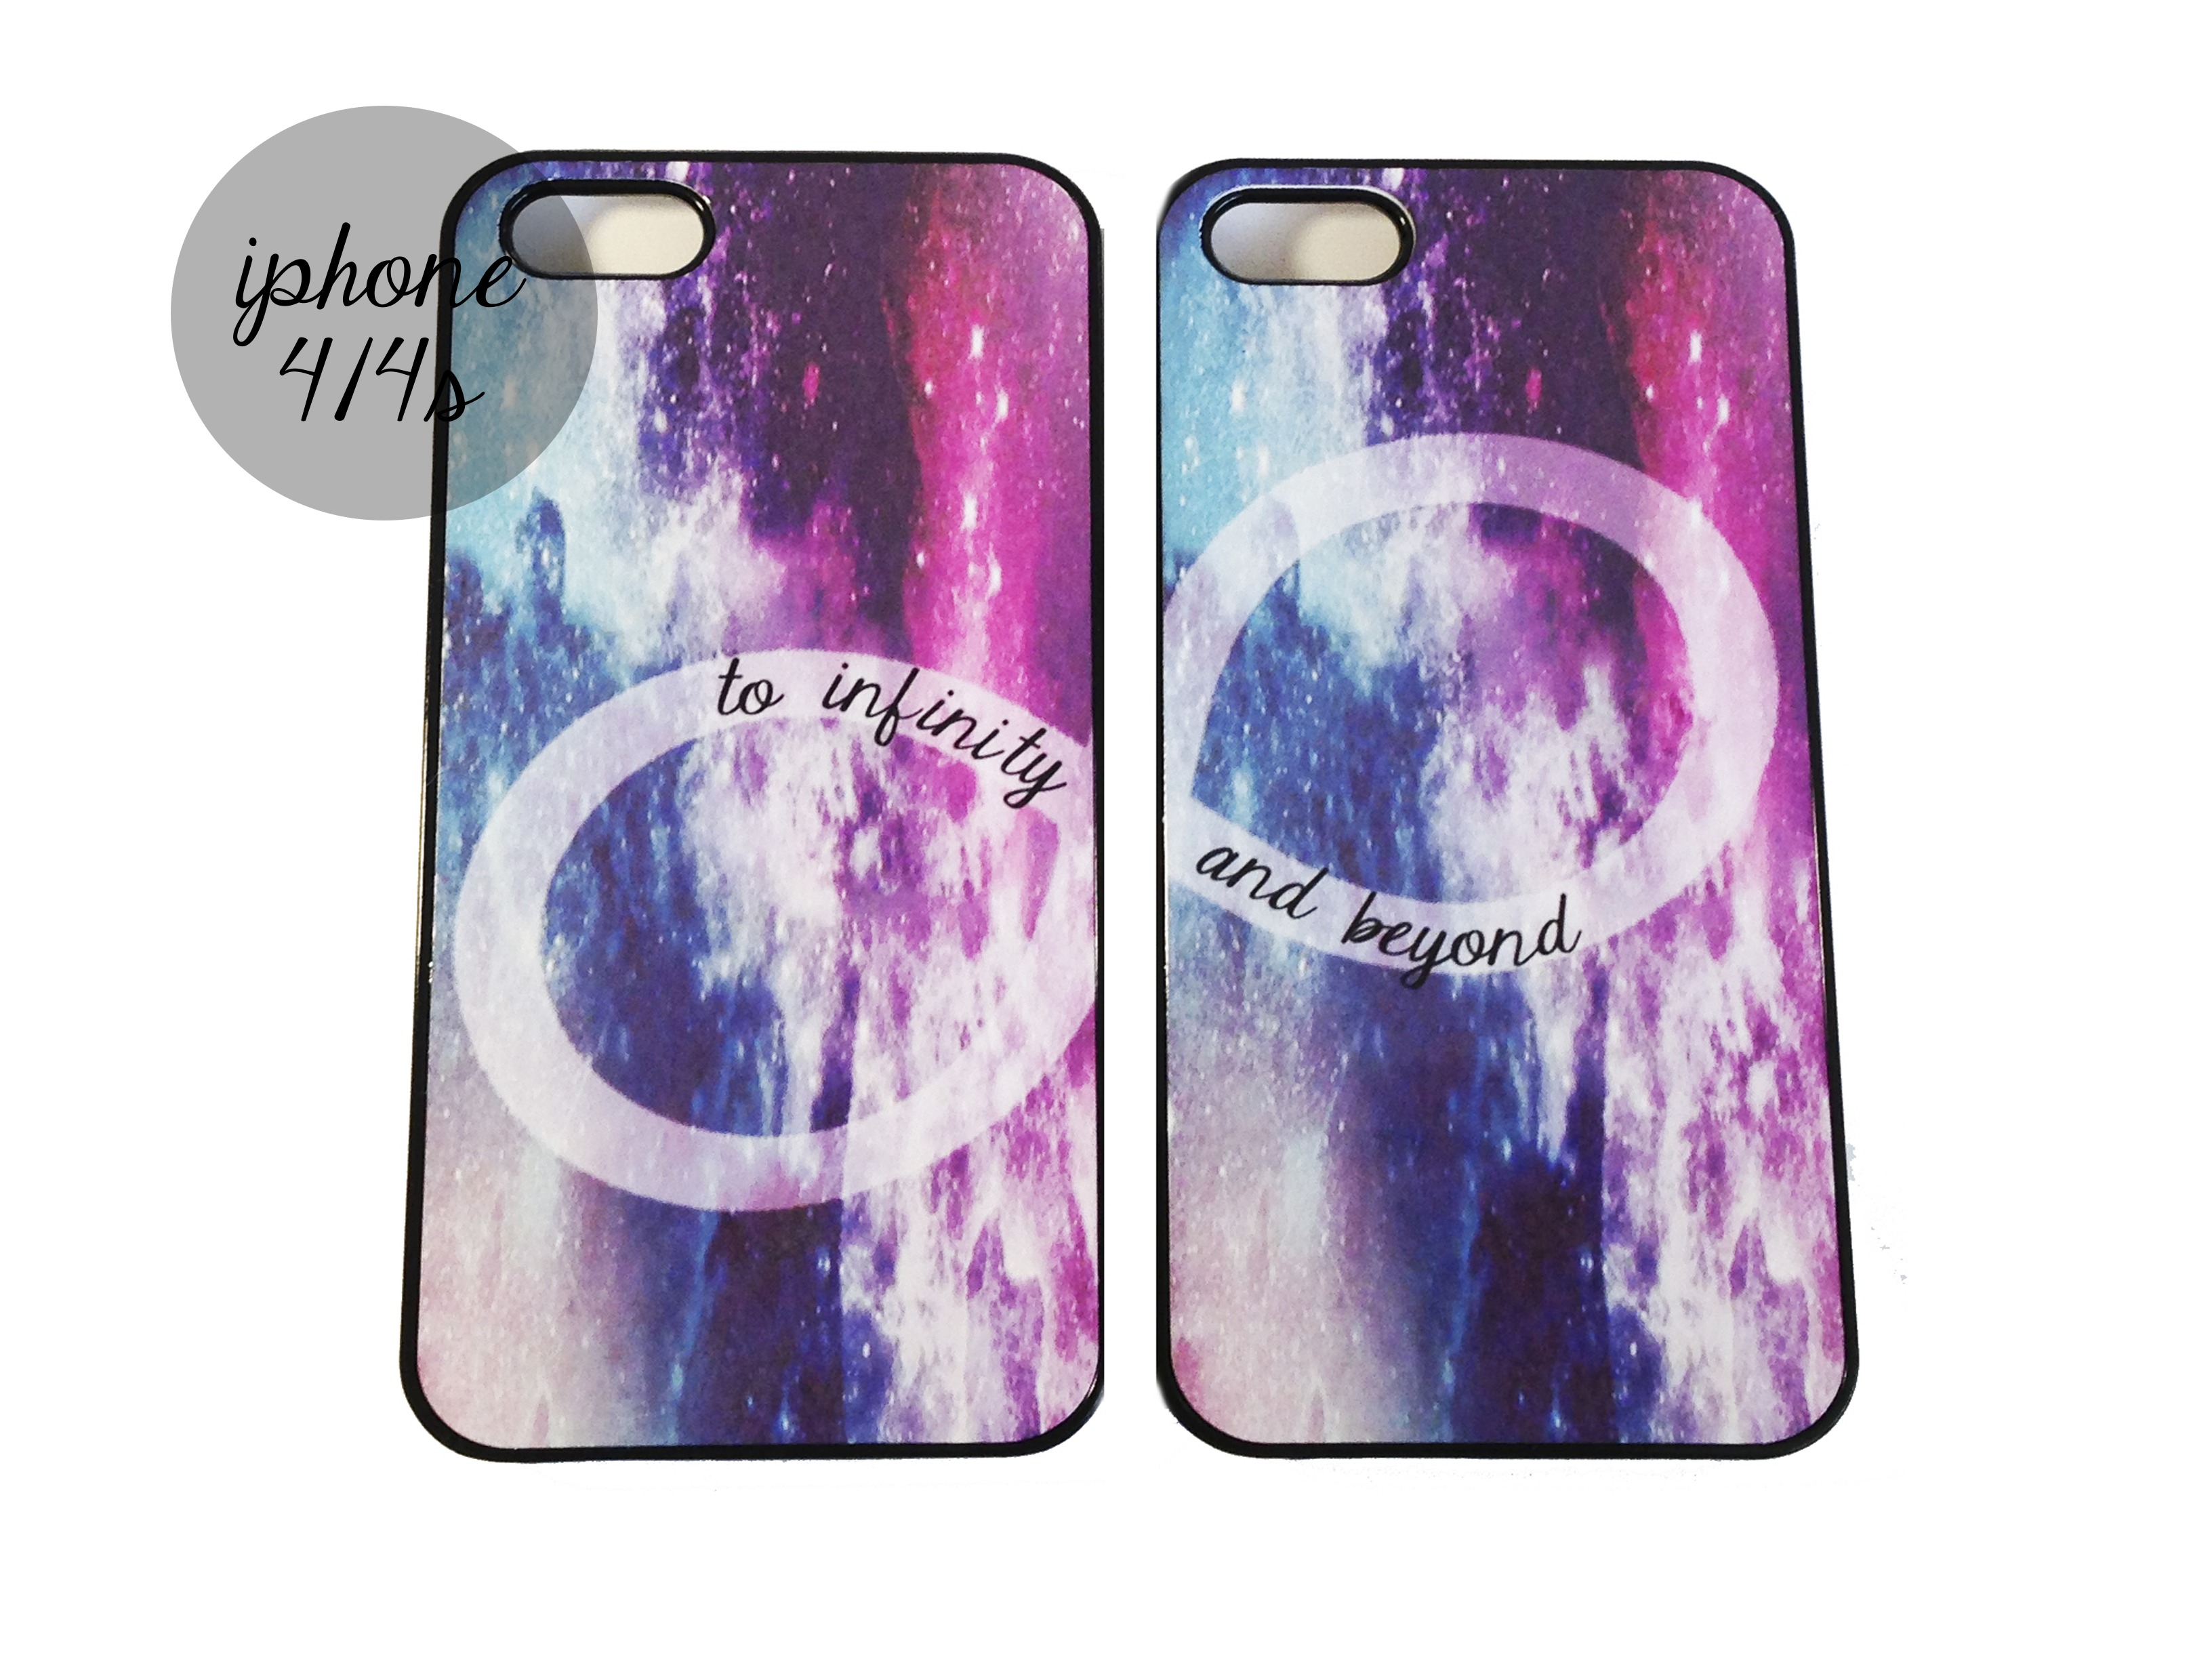 best friends iphone cases galaxy to infinity an beyond best f by 3264x2448